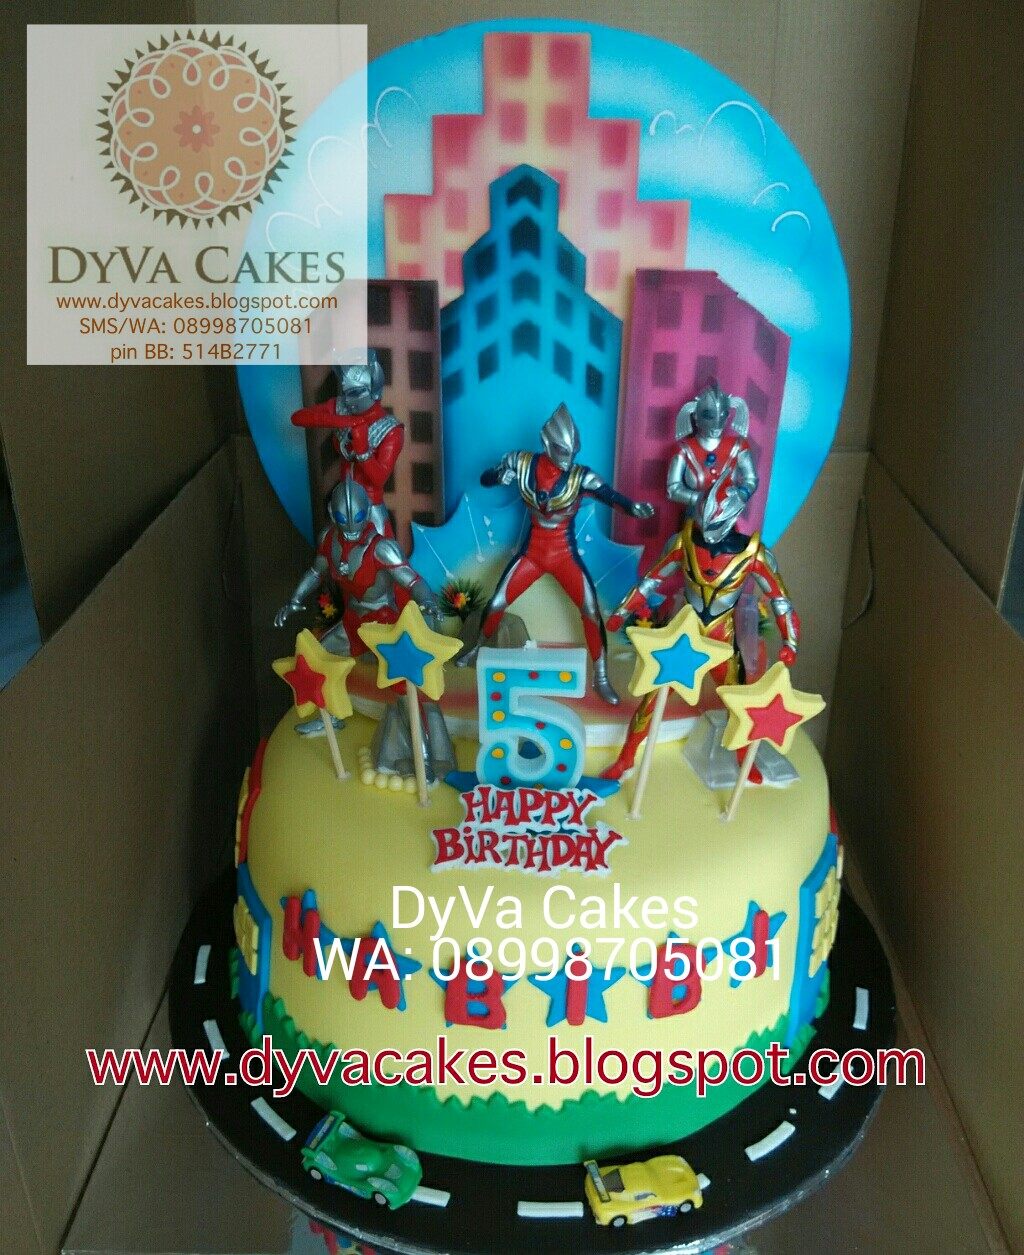 DyVa Cakes Ultraman Birthday Cake